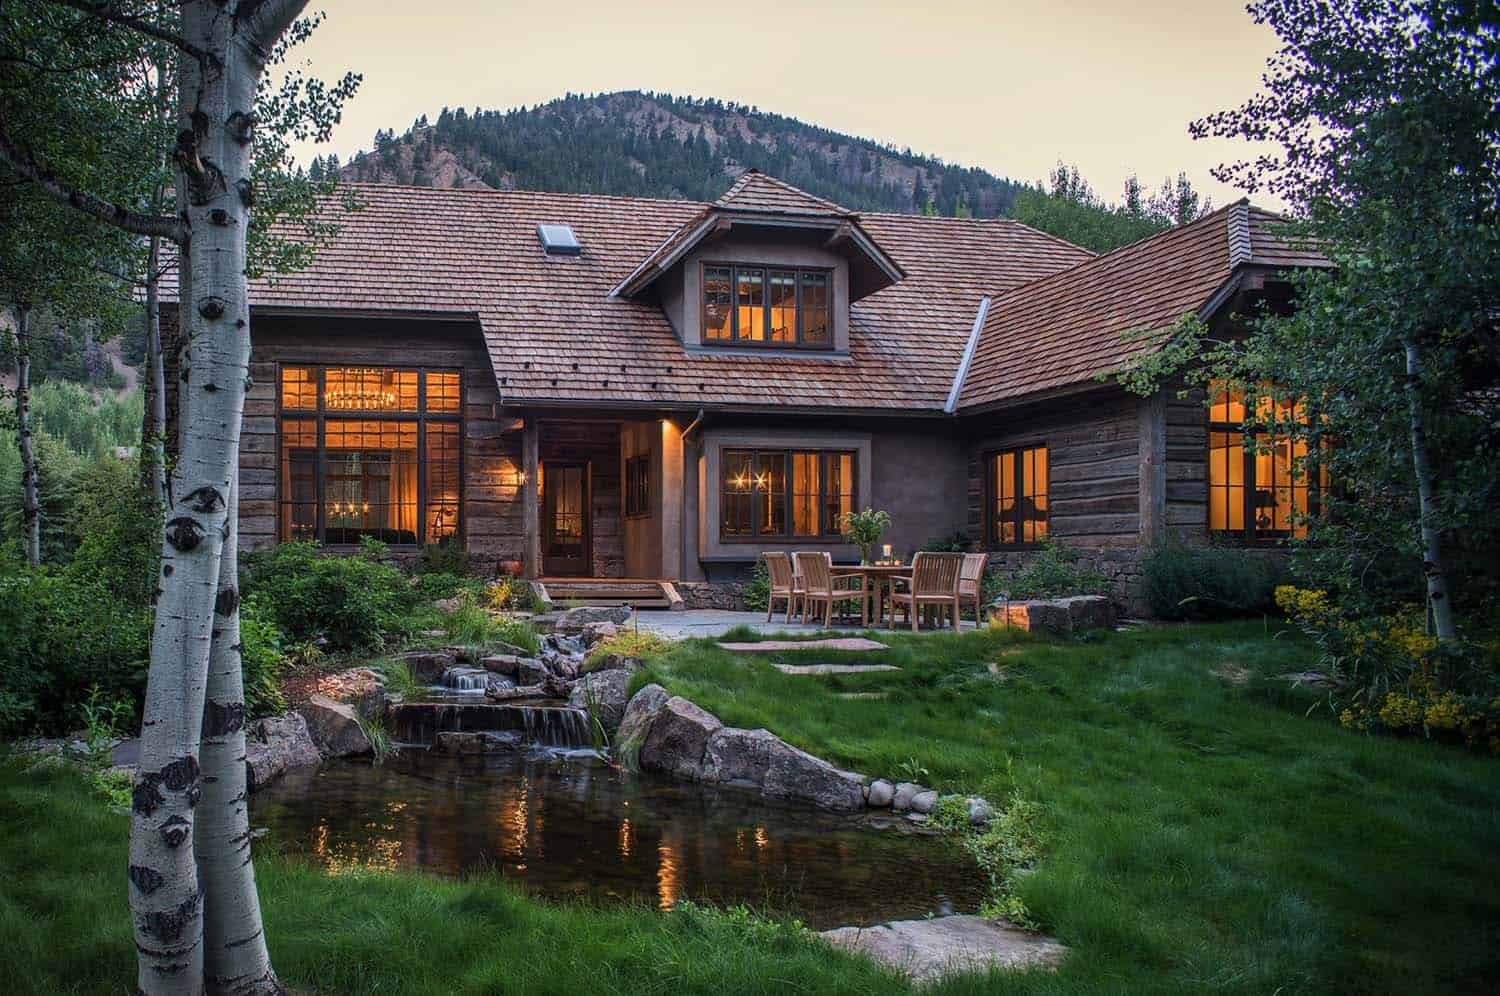 Wood River Valley Chalet-Miller Architects-02-1 Kindesign